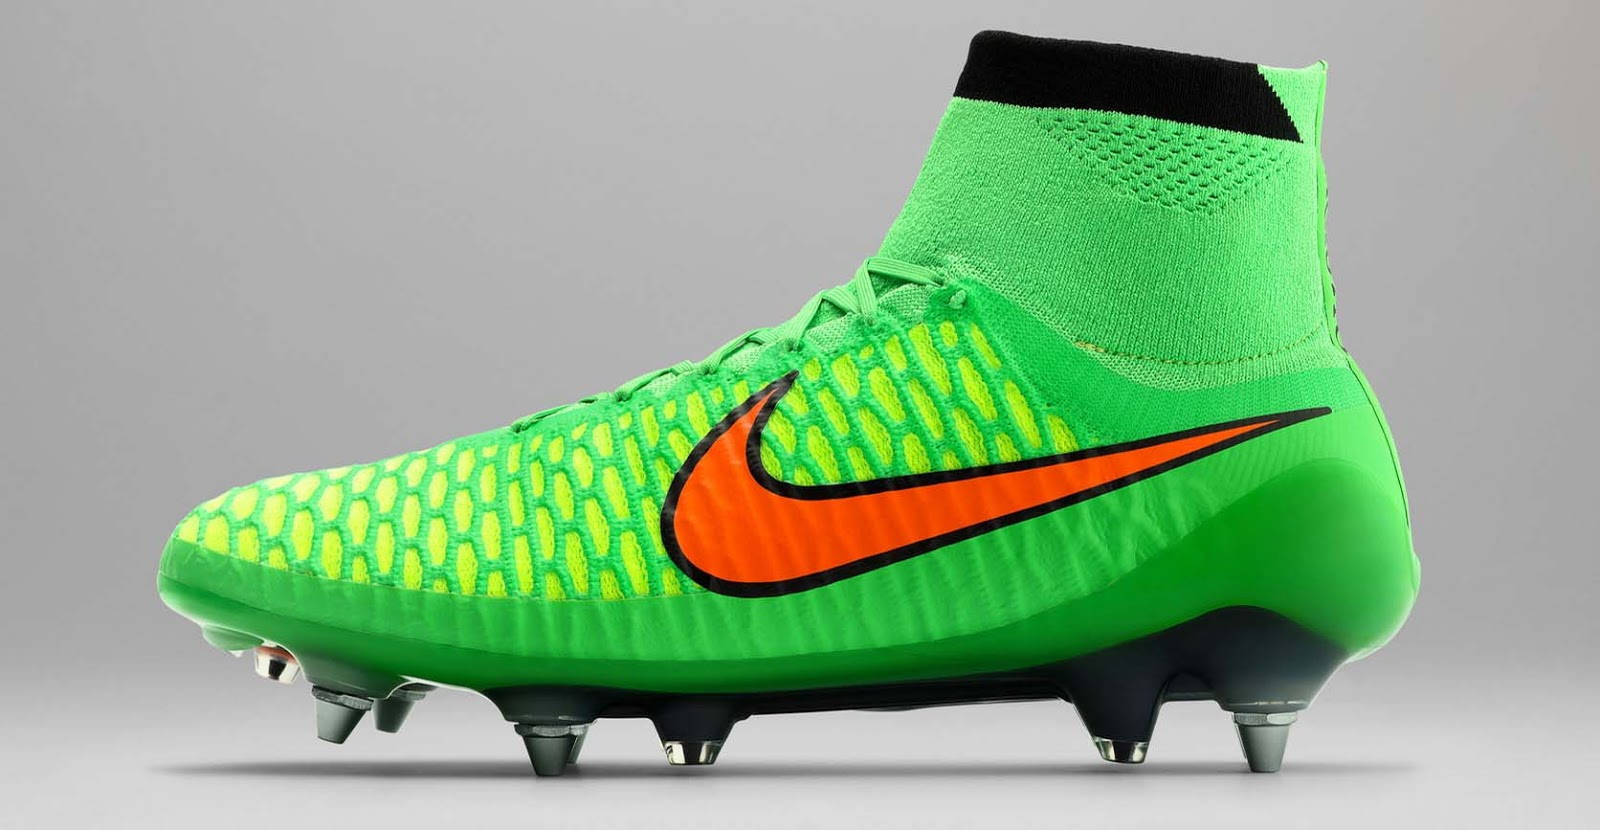 New Nike 2015 Football Boot Colorways - Nike Highlight ... - photo#49